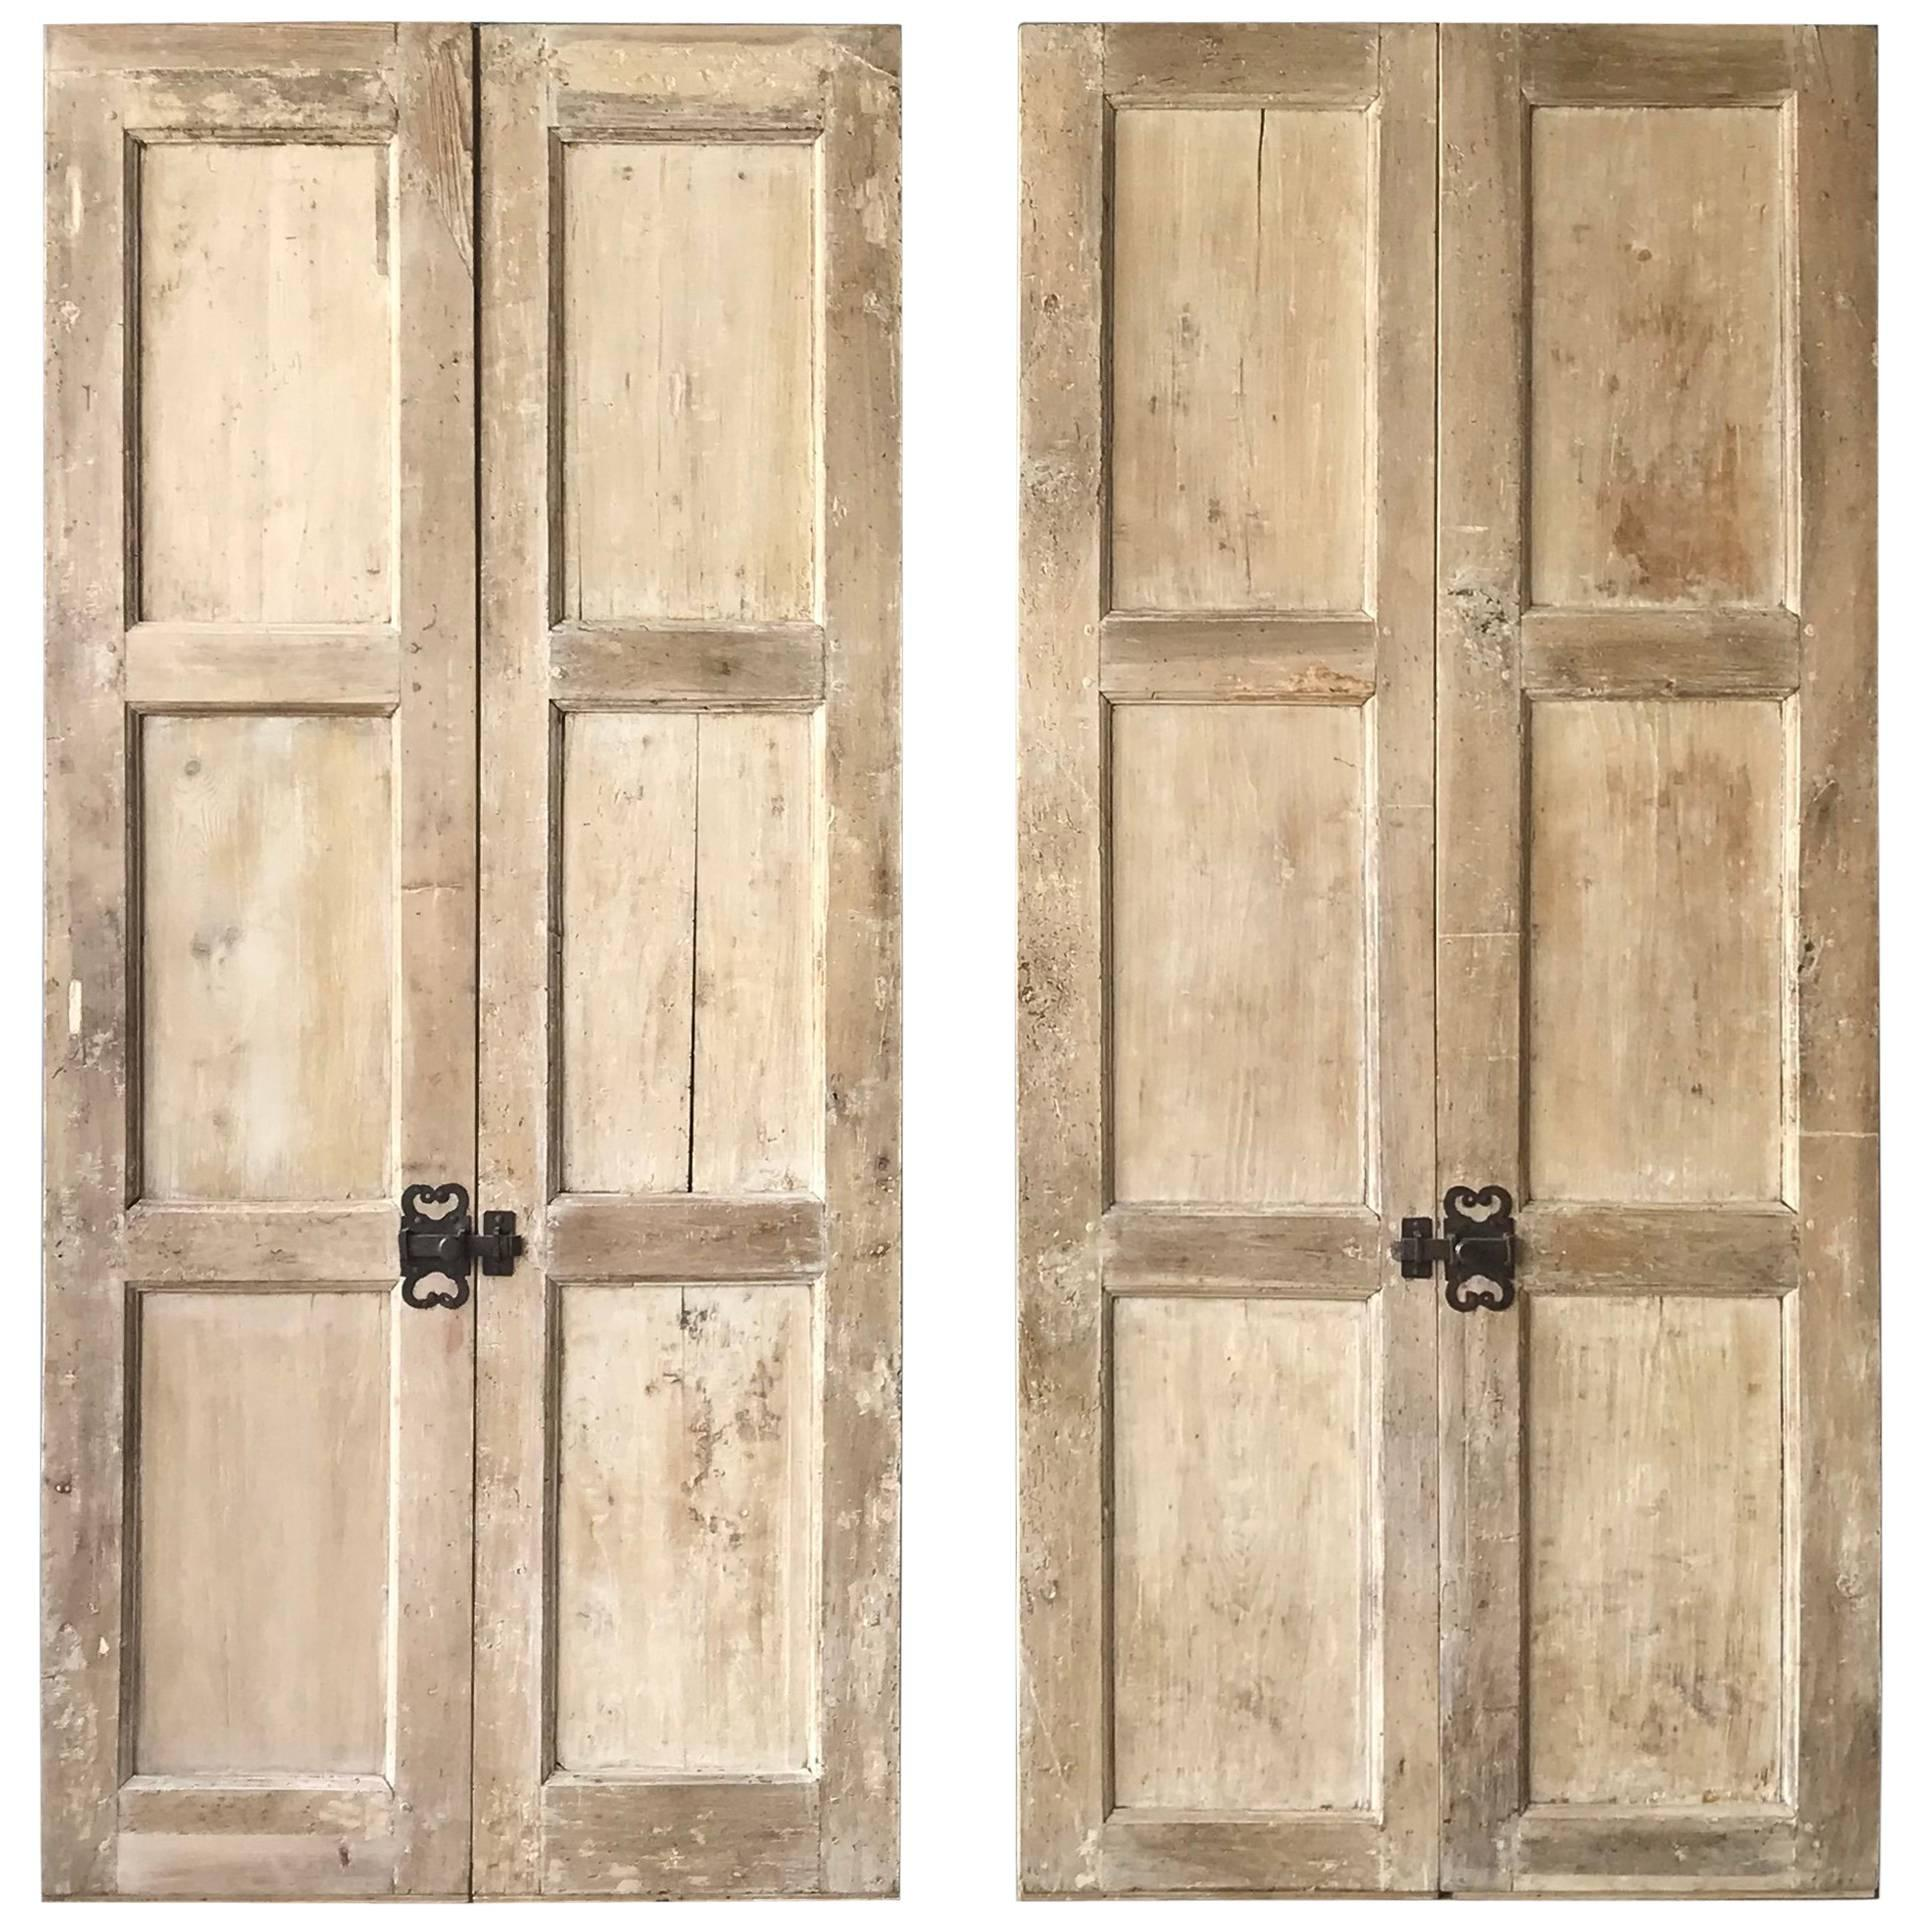 Set of Two 17th Century Walnut and Poplar Doors For Sale & Set of Two 17th Century Walnut and Poplar Doors For Sale at 1stdibs